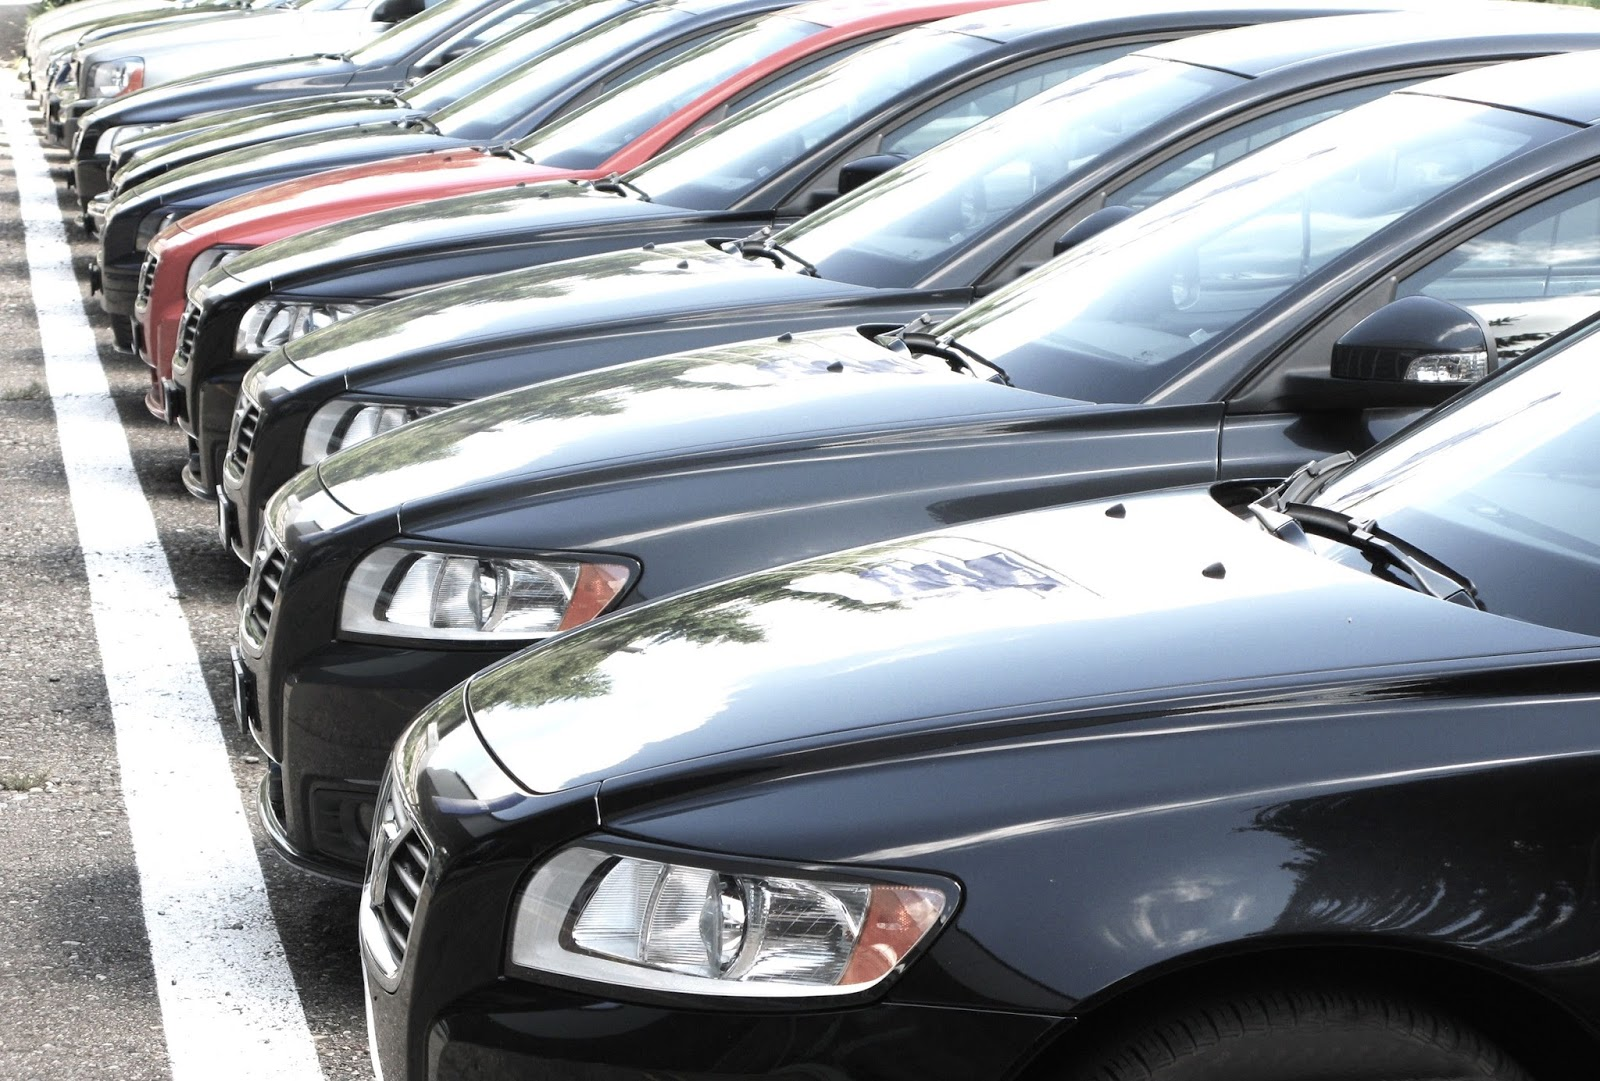 Protect Your Vehicle With Car Parking Near Coolangatta Airport